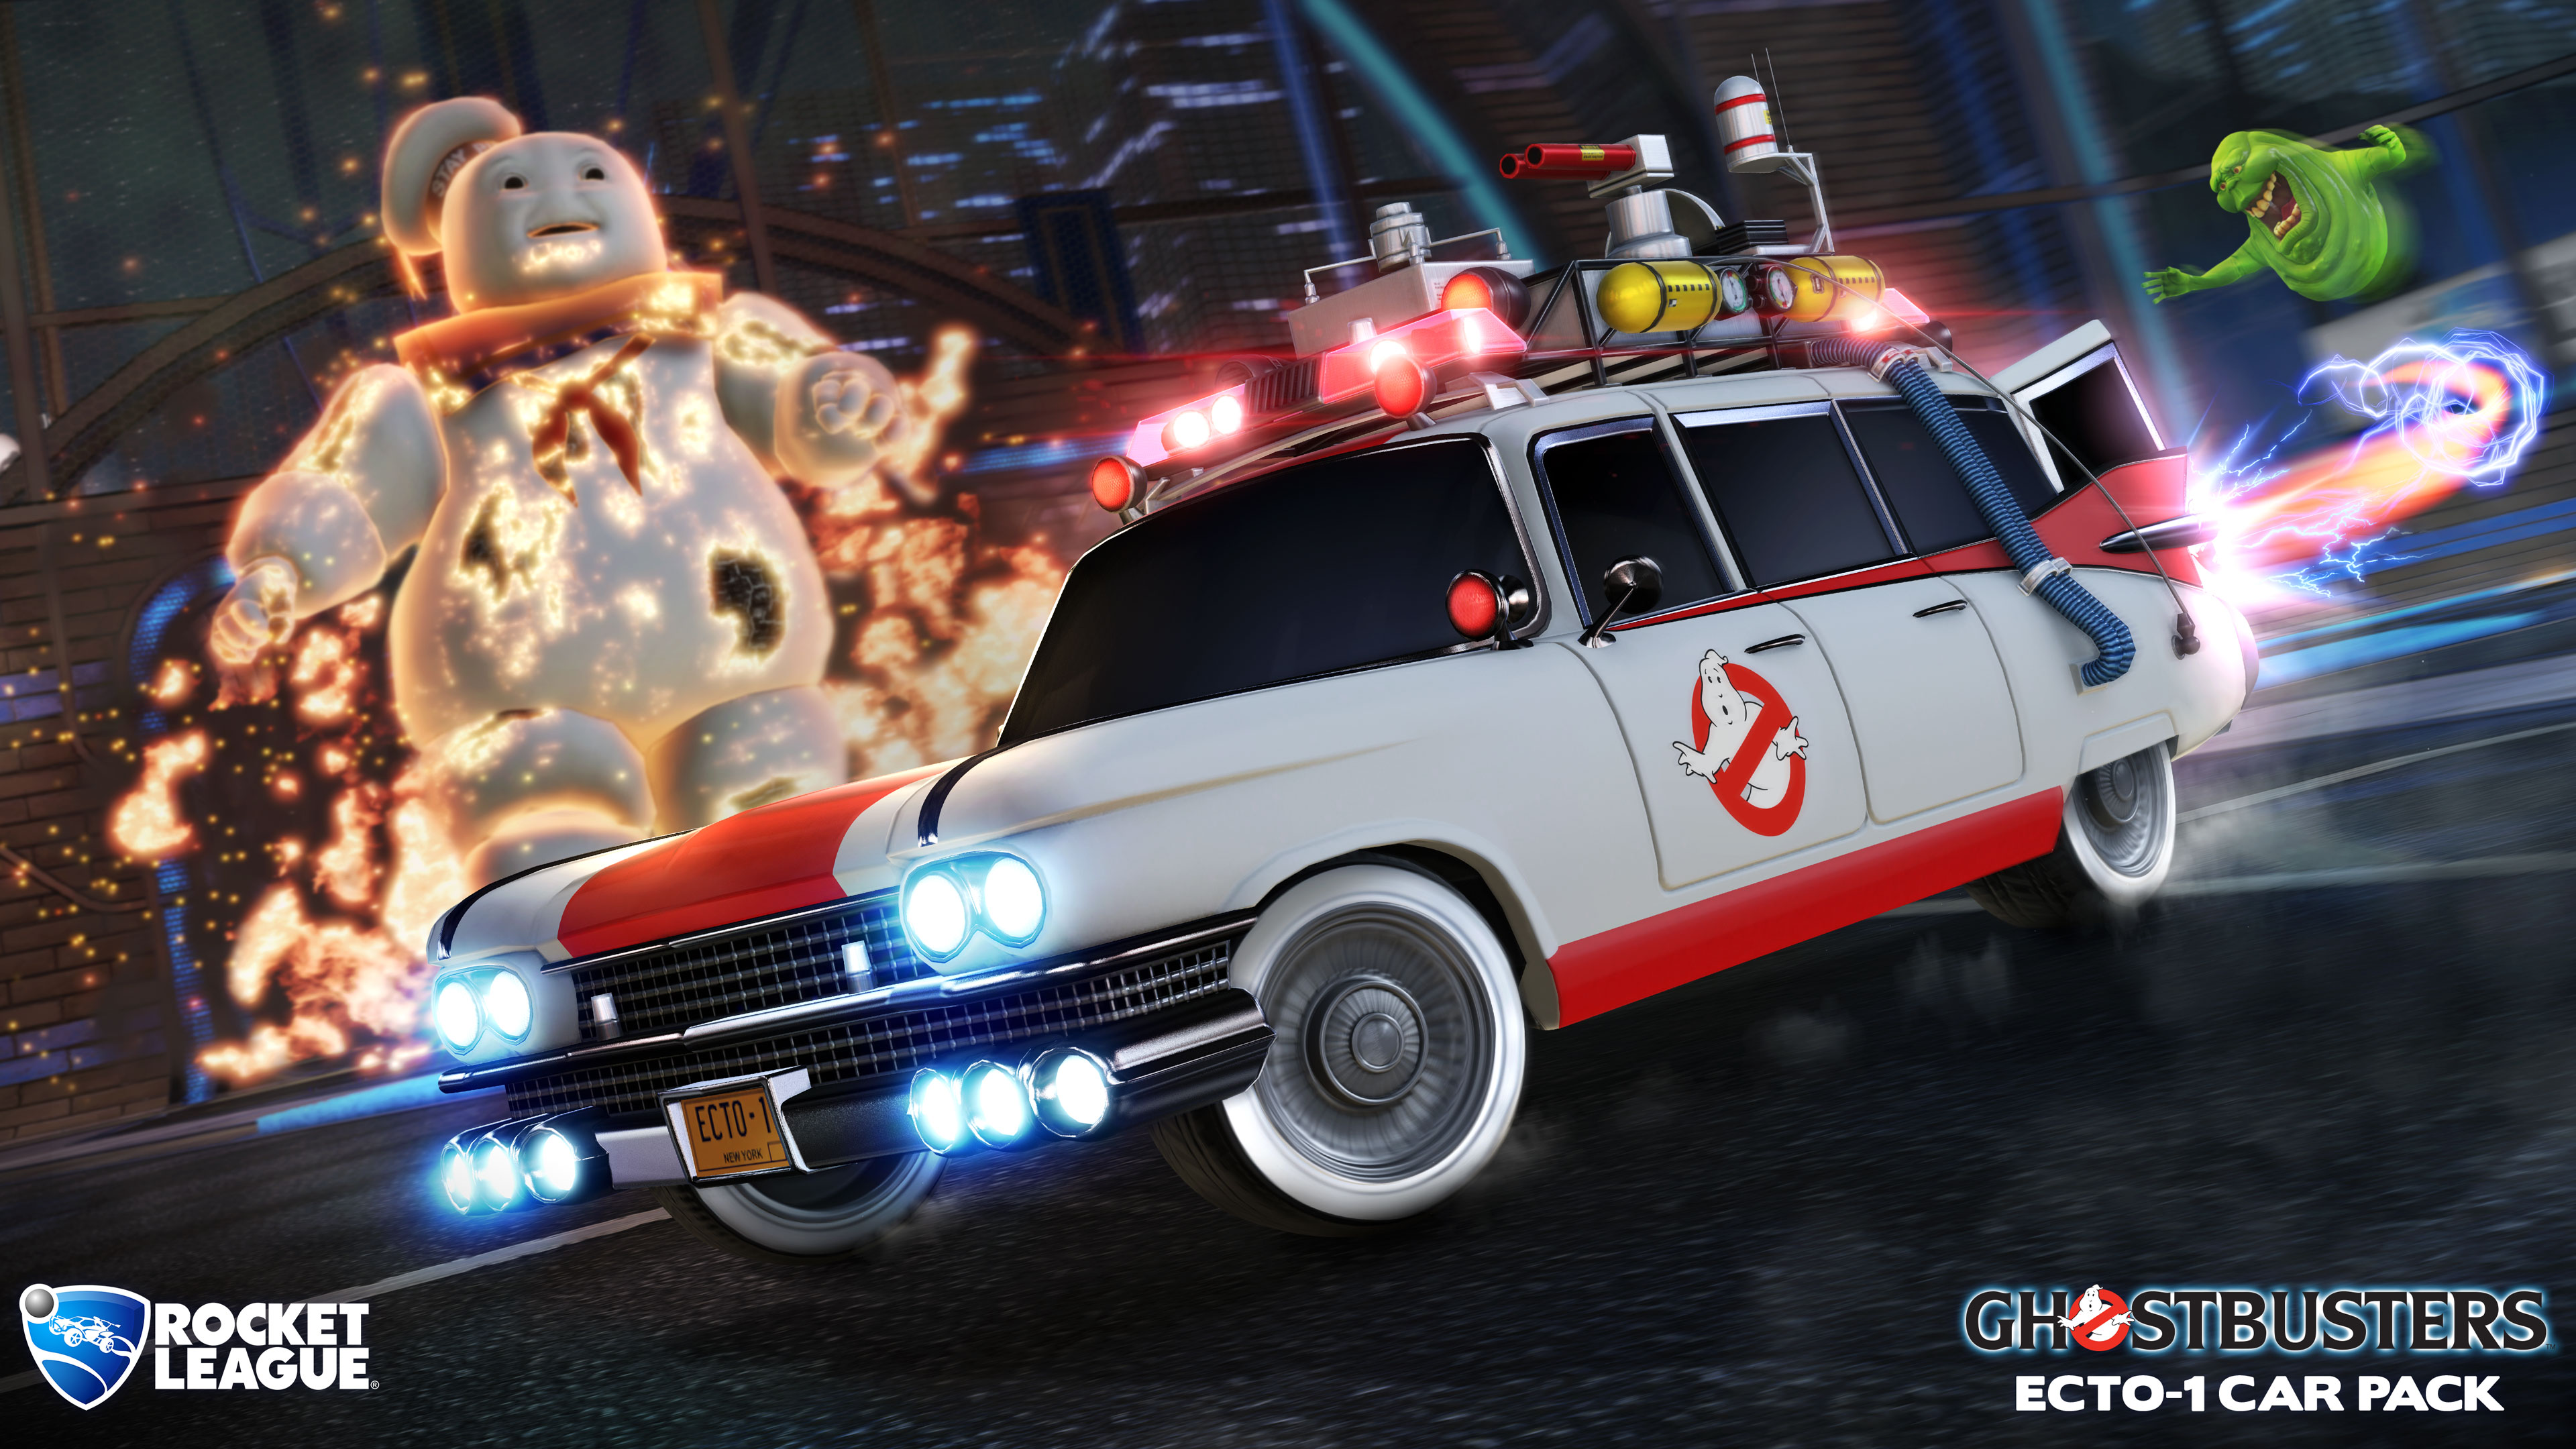 ghostbusters-car-pack_hero